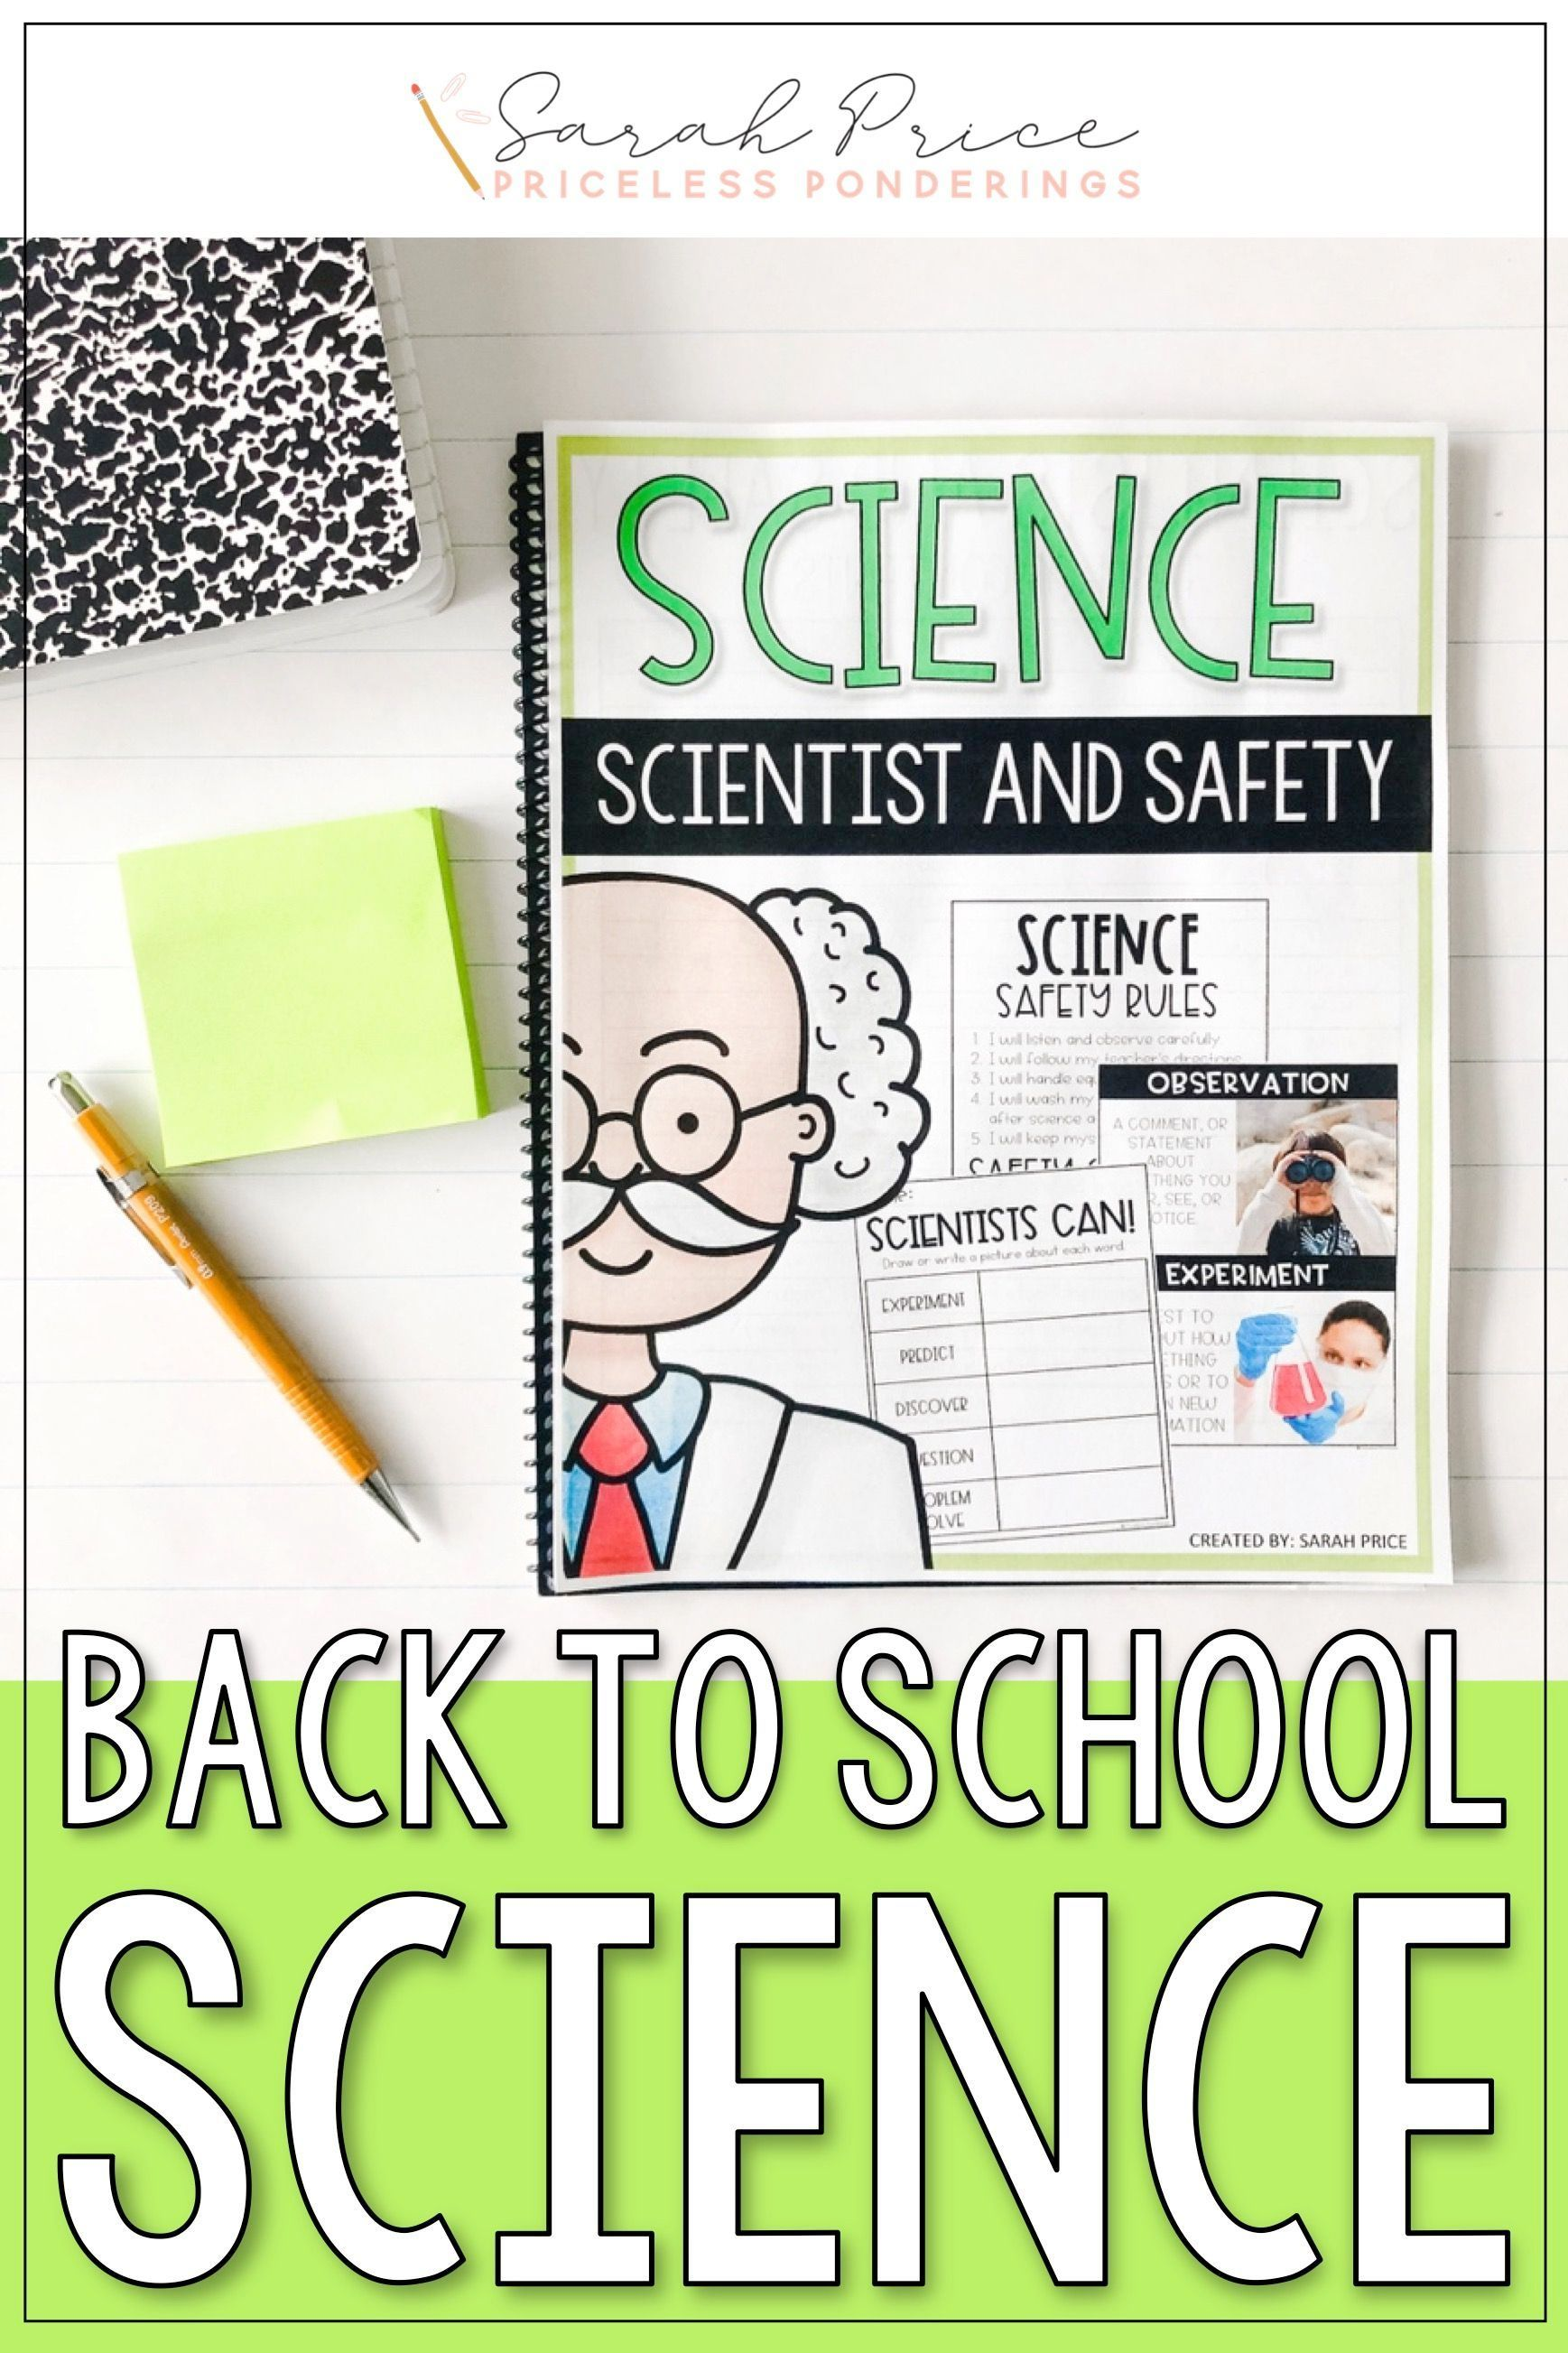 What Is A Scientist Science Safety And Science Tools